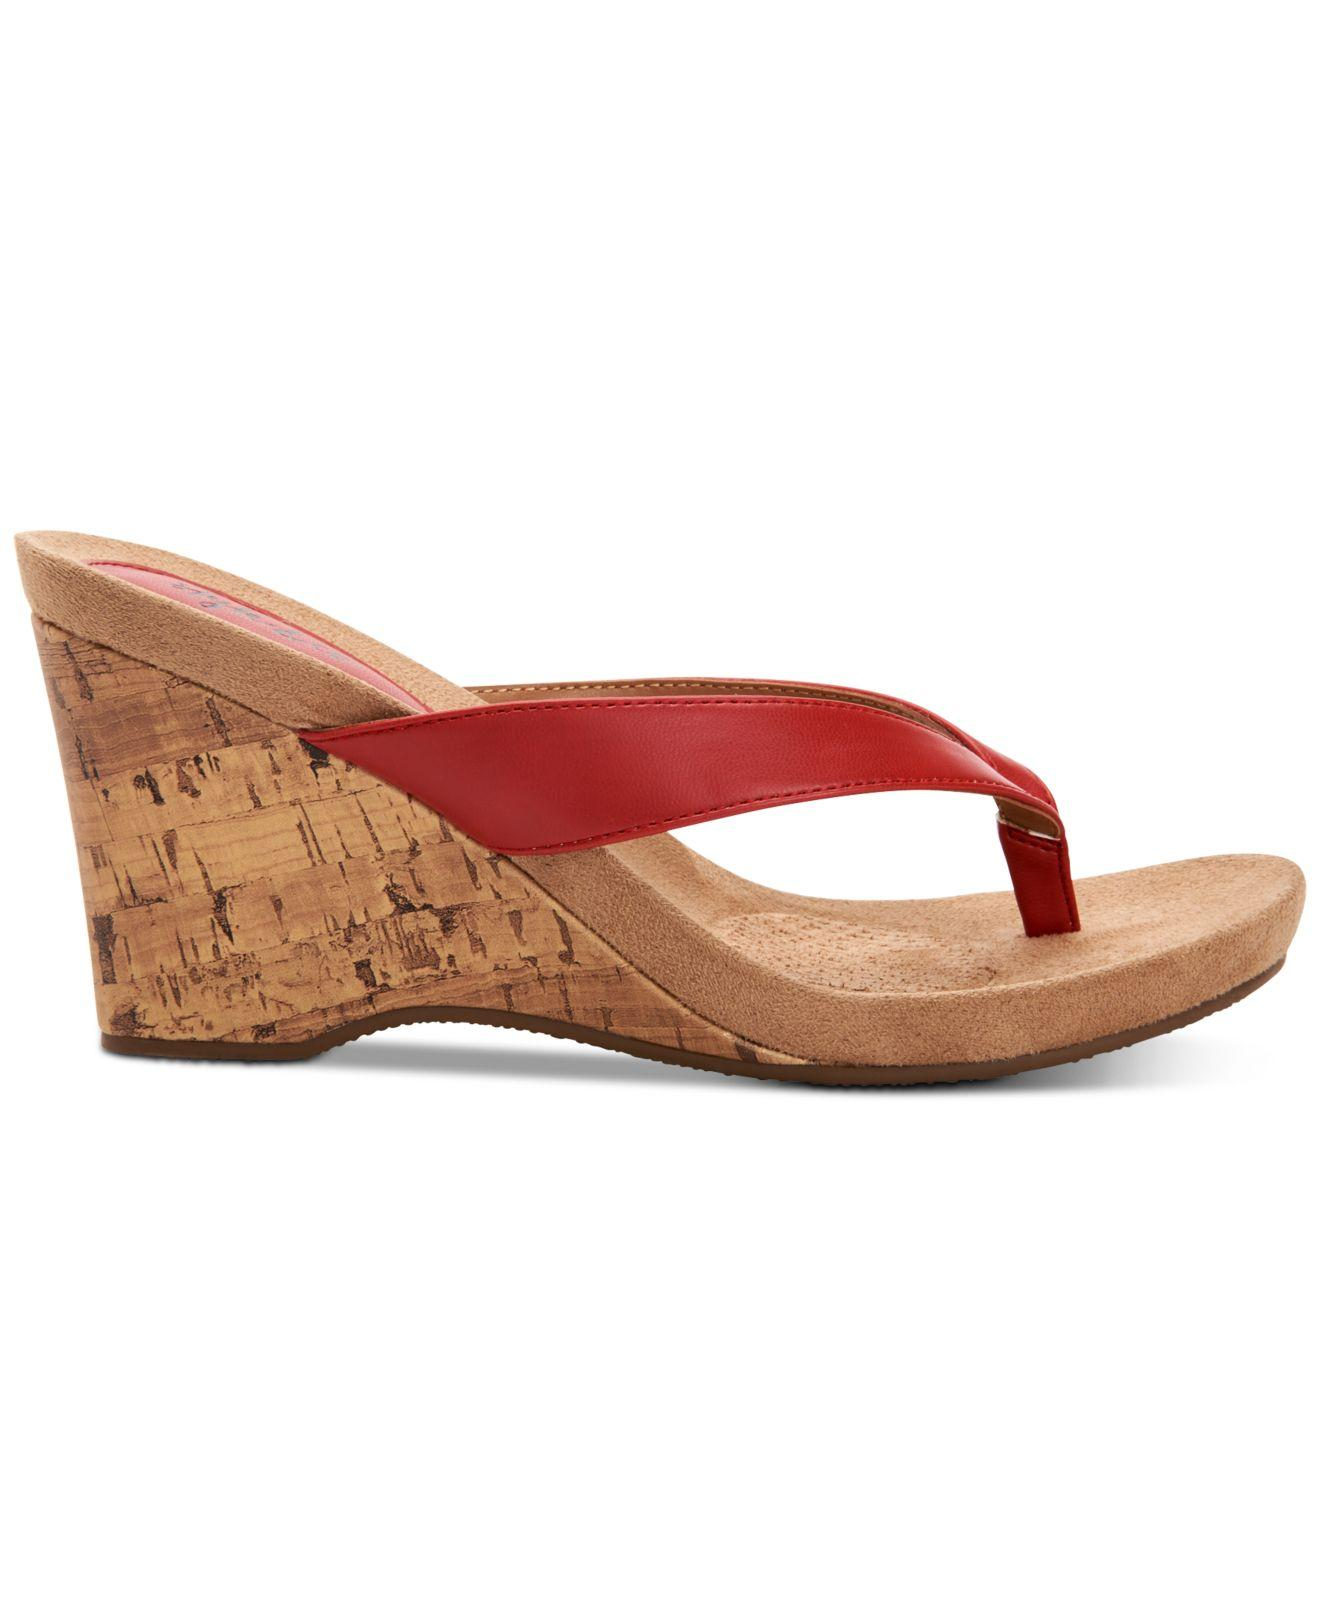 d0d0a6a1a44 Lyst - Style   Co. Chicklet Wedge Thong Sandals